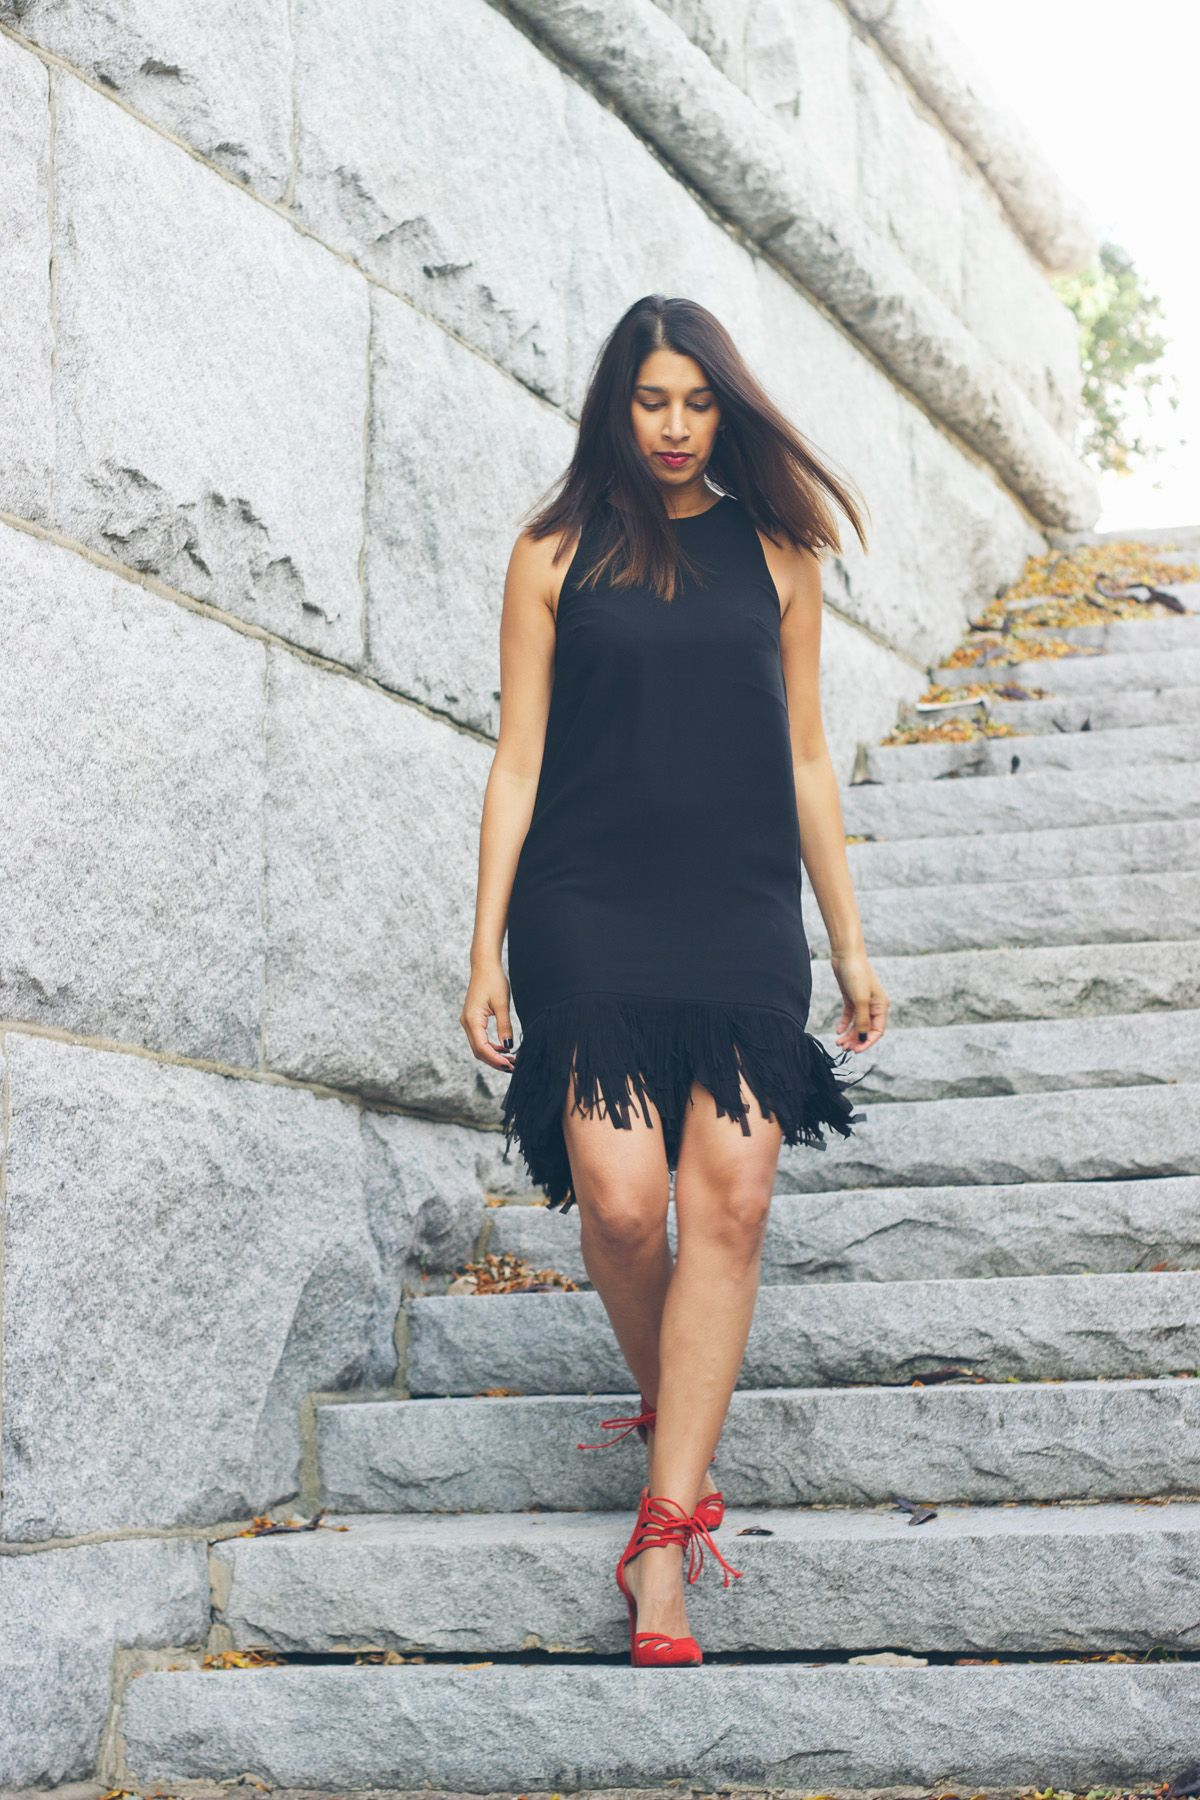 The Holiday Dress You Need Lows To Luxe Dresses Black Fringe Dress Red Heels Outfit [ 1800 x 1200 Pixel ]